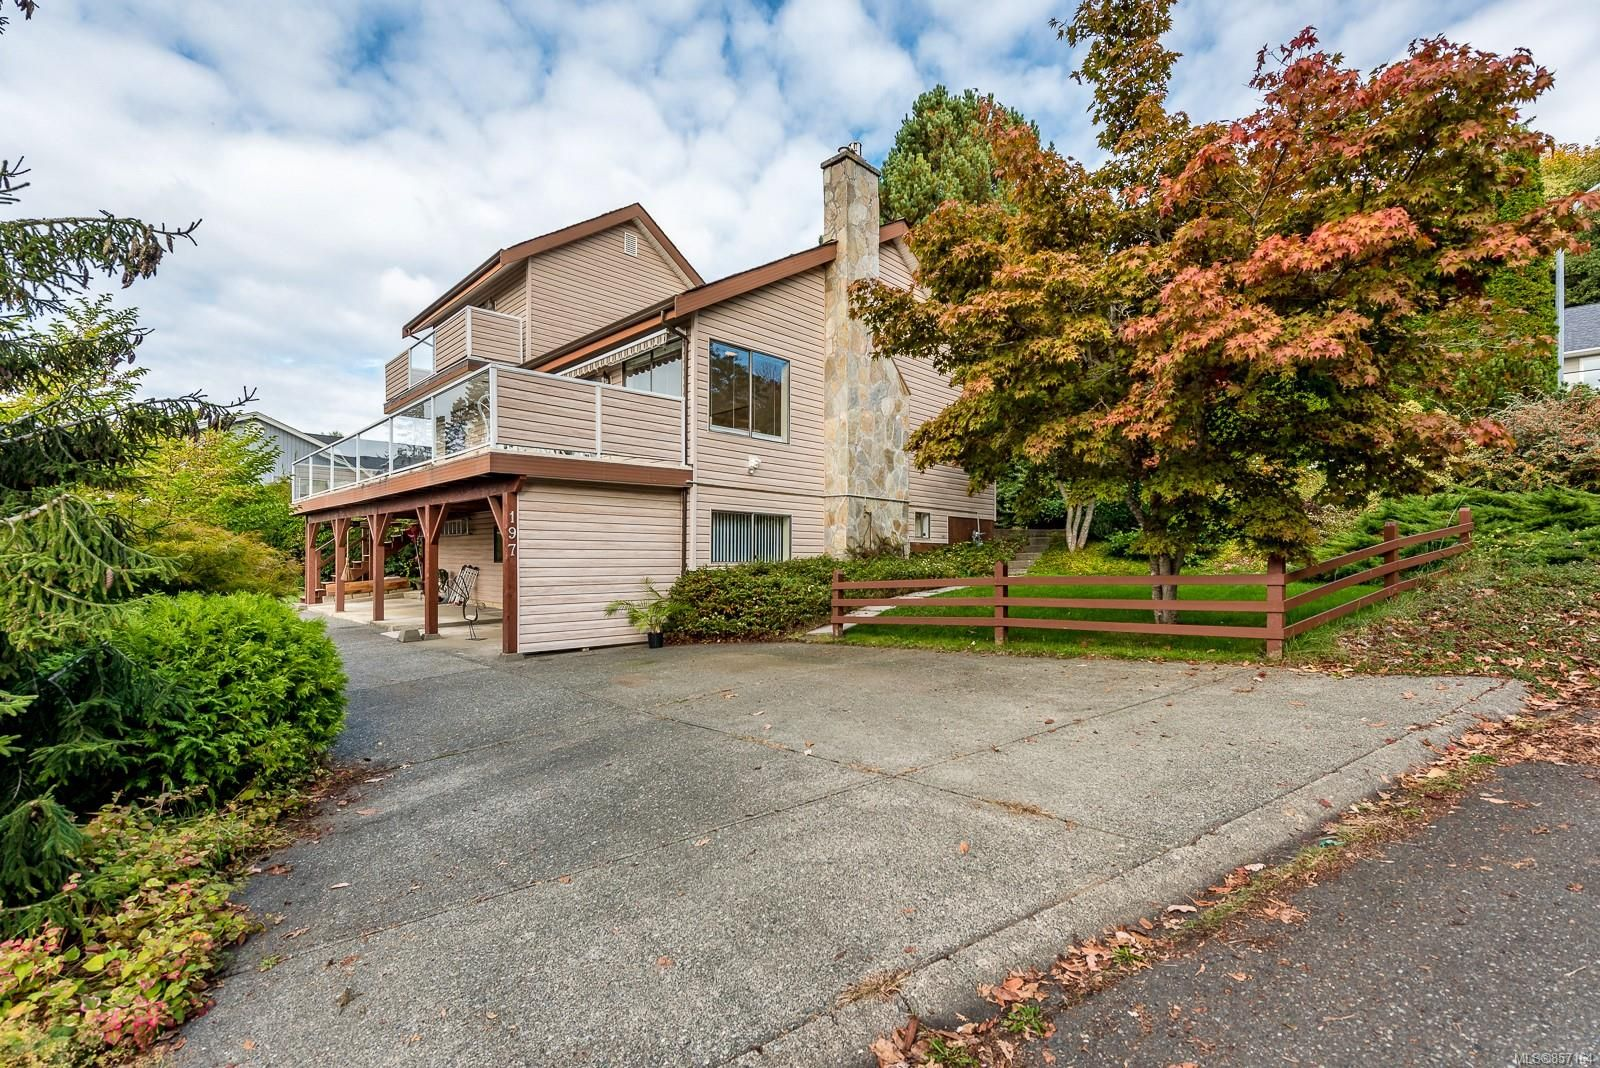 Main Photo: 197 Stafford Ave in : CV Courtenay East House for sale (Comox Valley)  : MLS®# 857164